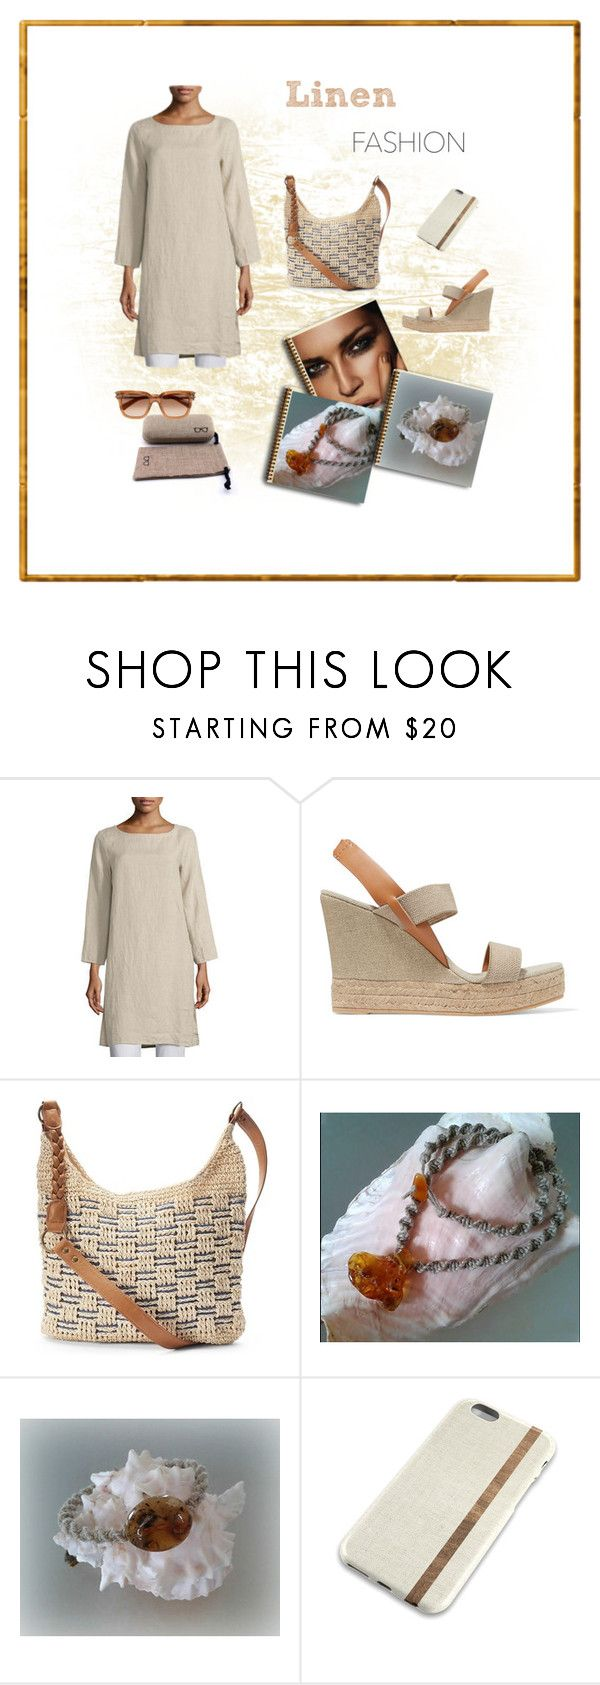 """""""Linen Fashion"""" by styledonna on Polyvore featuring moda, Eileen Fisher, Tory Burch, SONOMA Goods for Life i Chloé"""